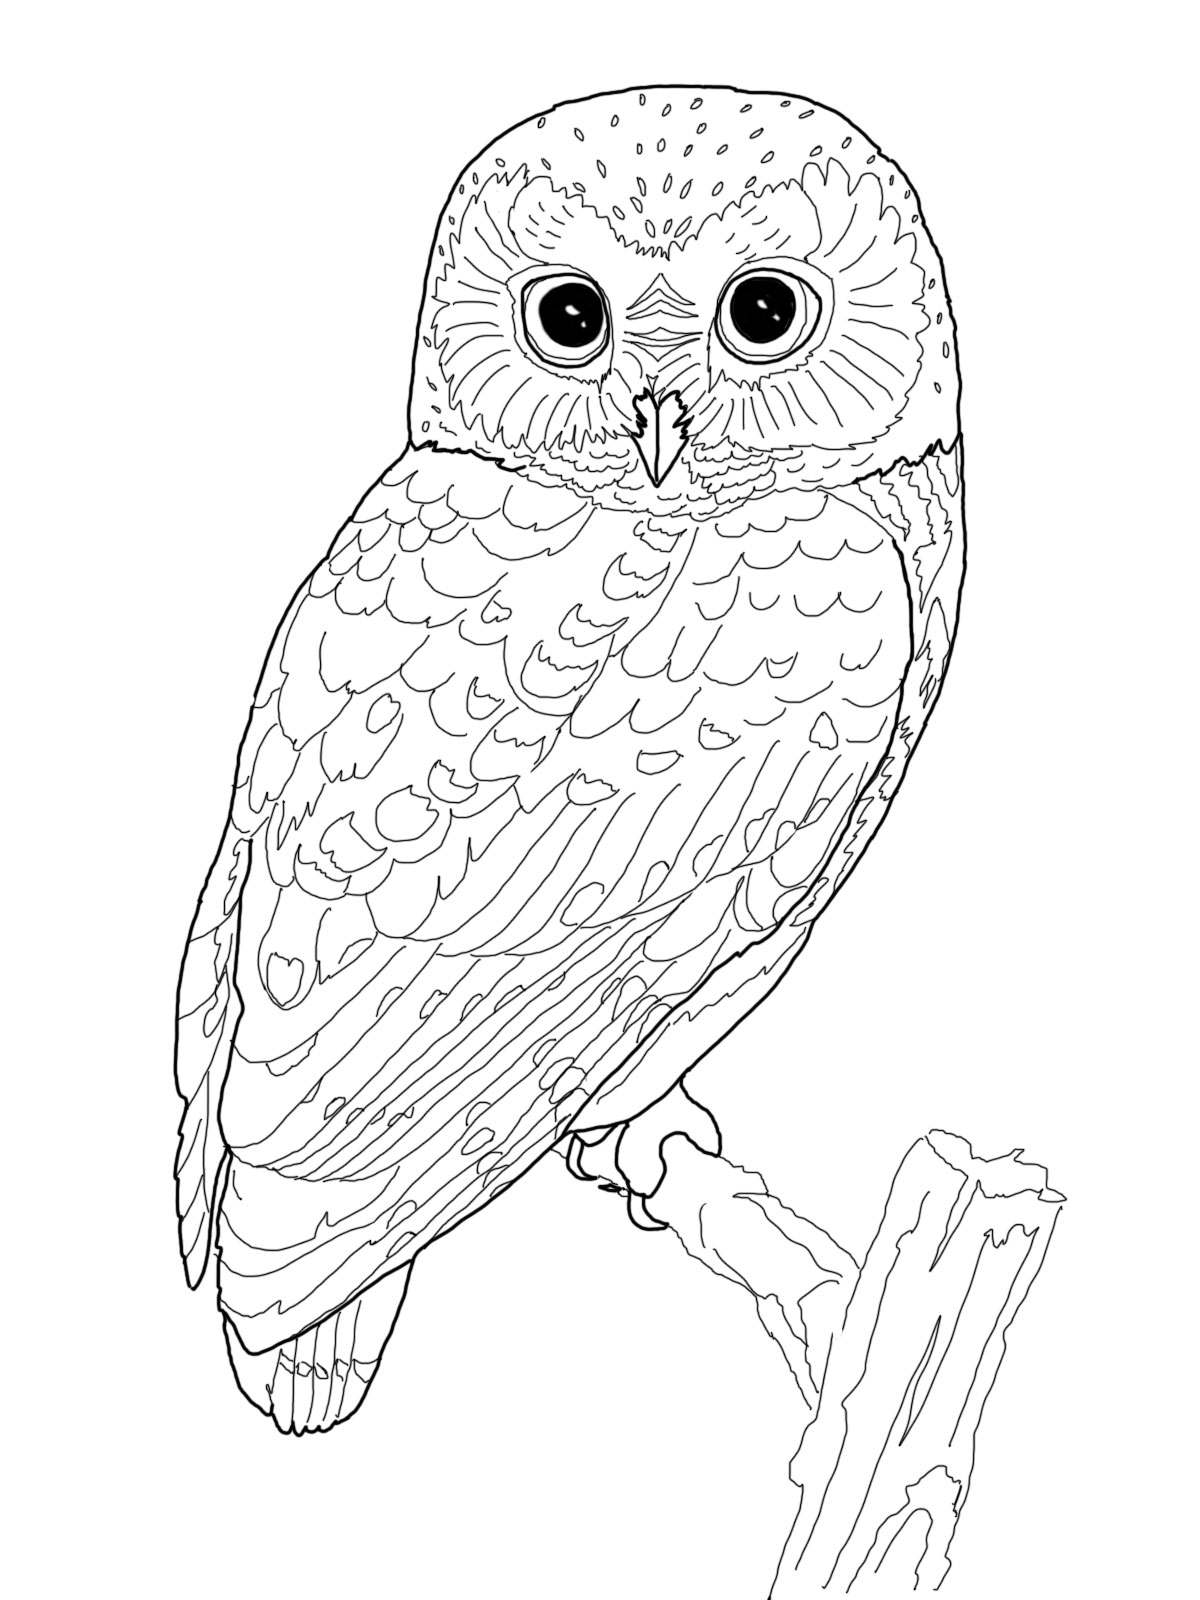 owl coloring owl coloring pages for adults free detailed owl coloring owl coloring